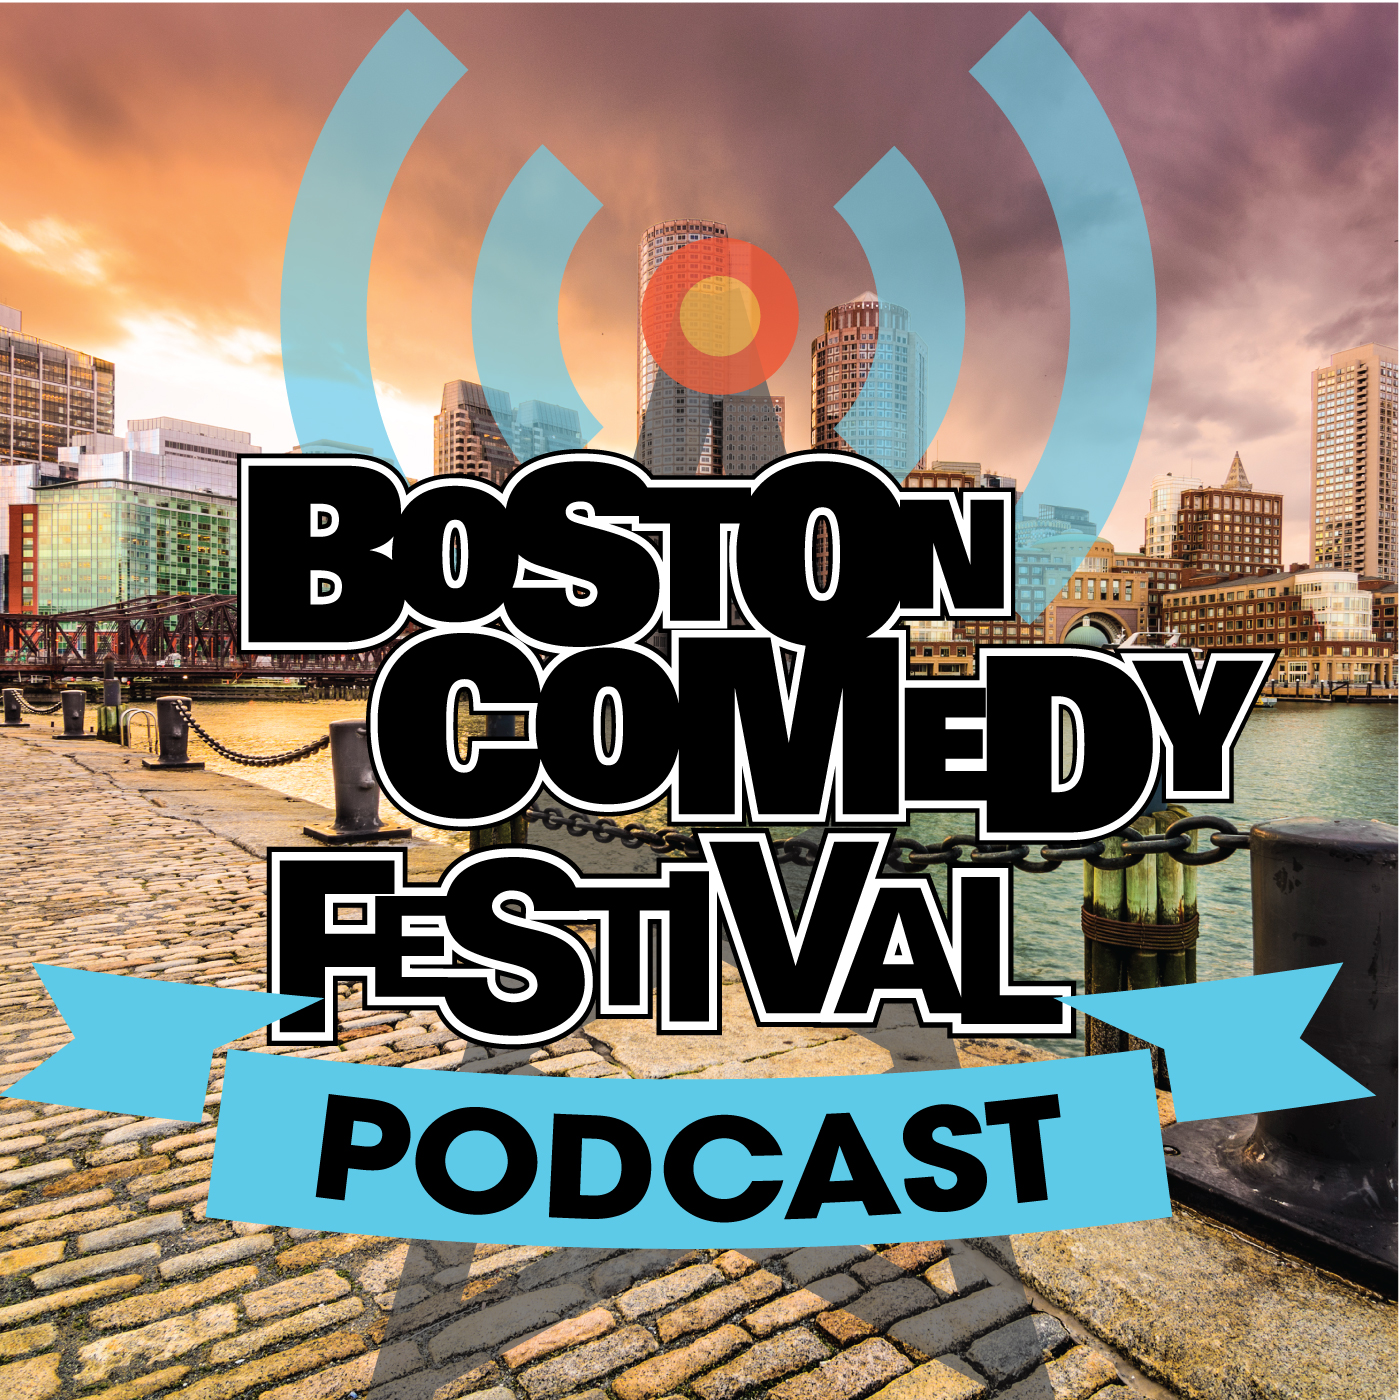 BOSTON COMEDY FESTIVAL Podcast LIVE